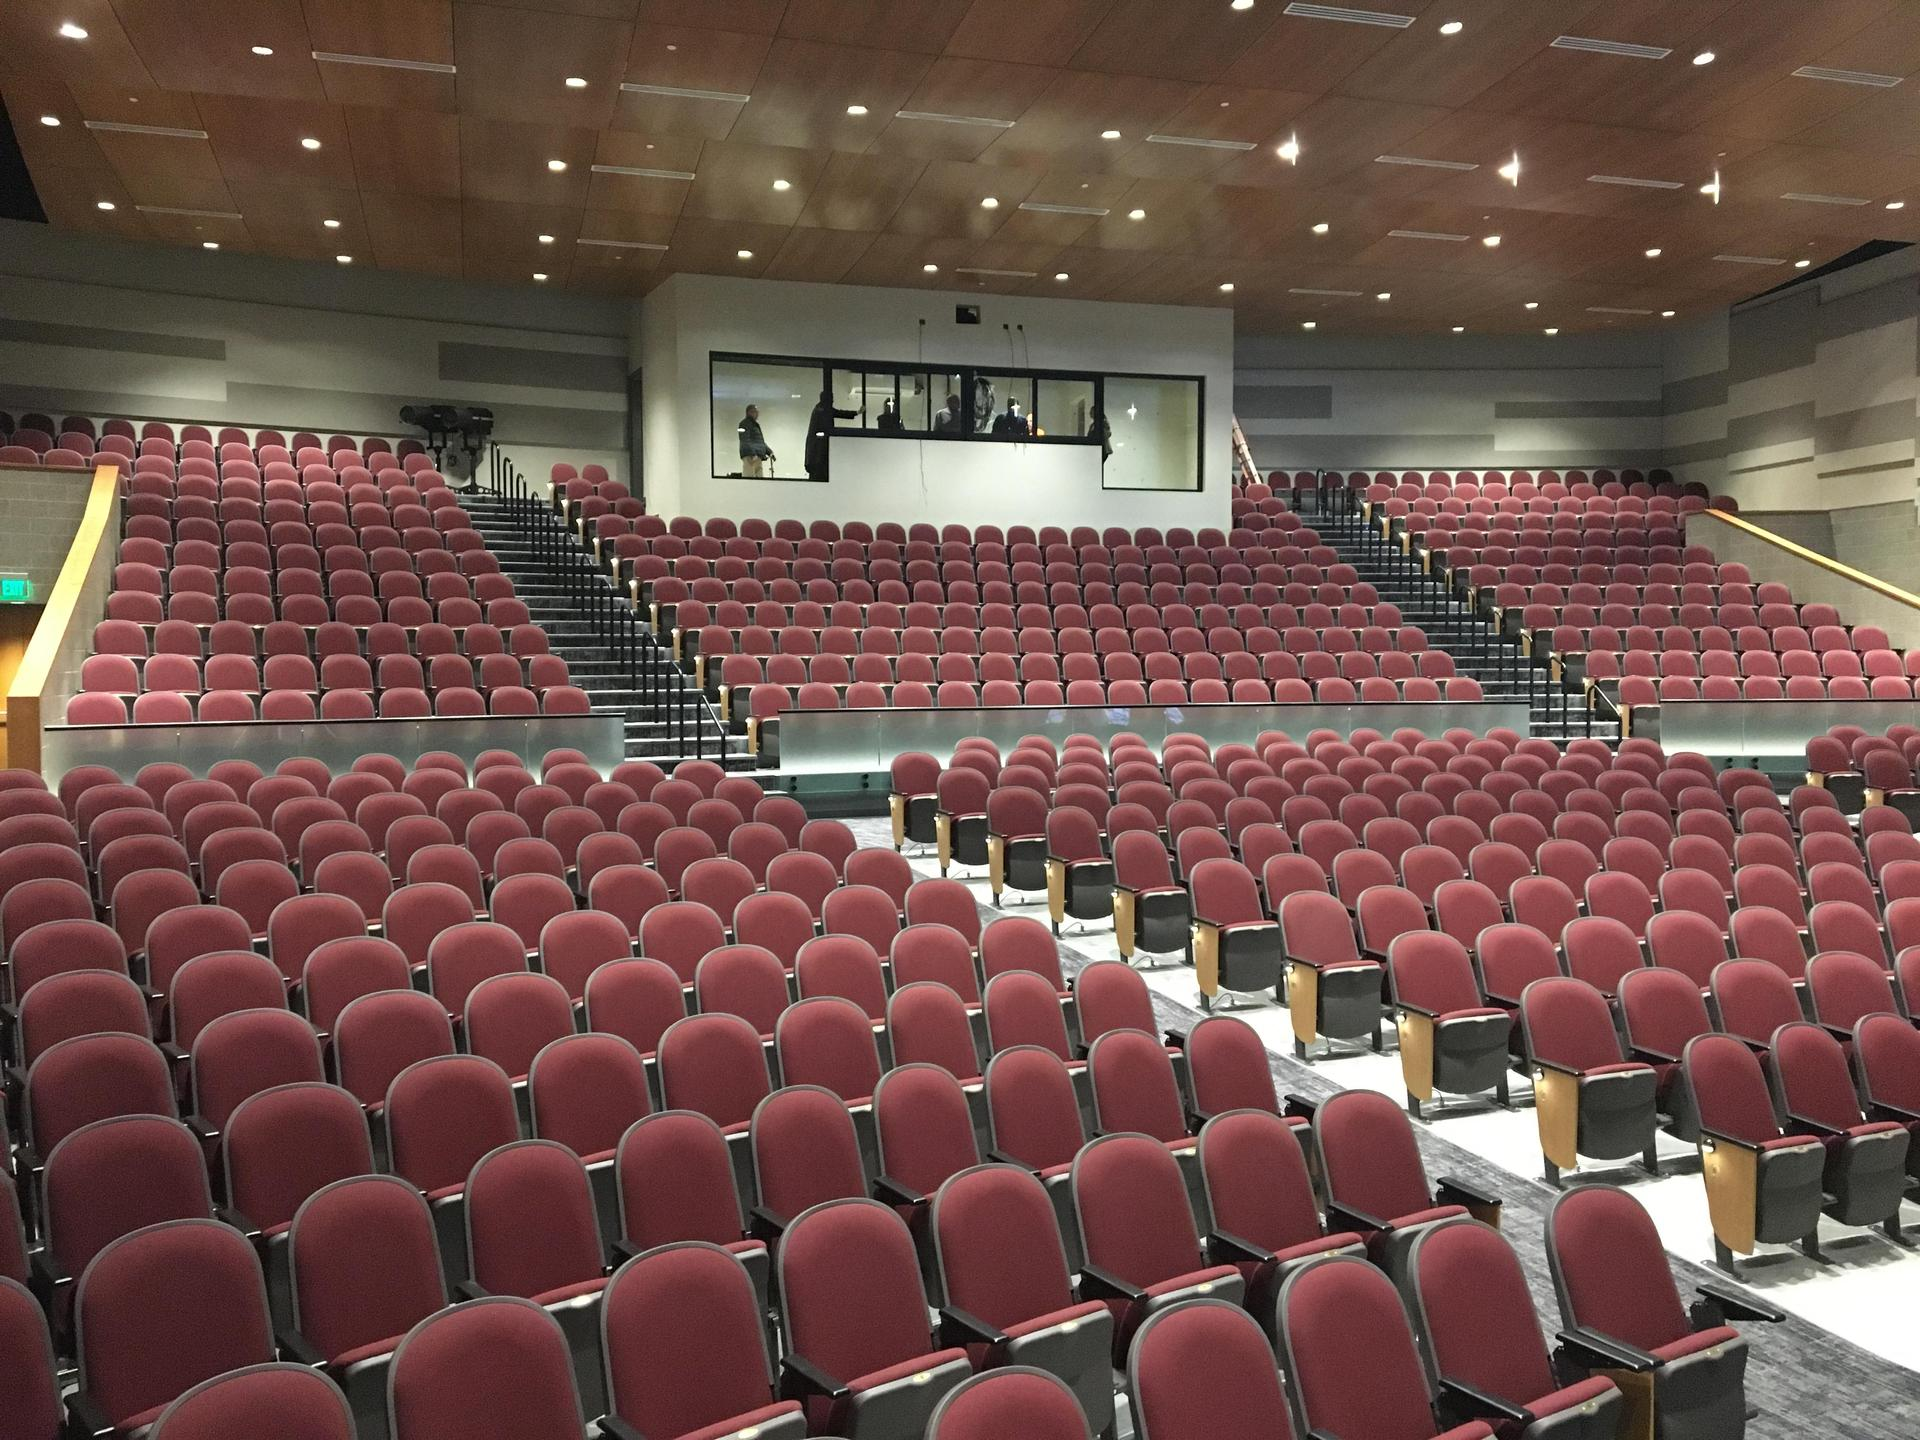 The new auditorium